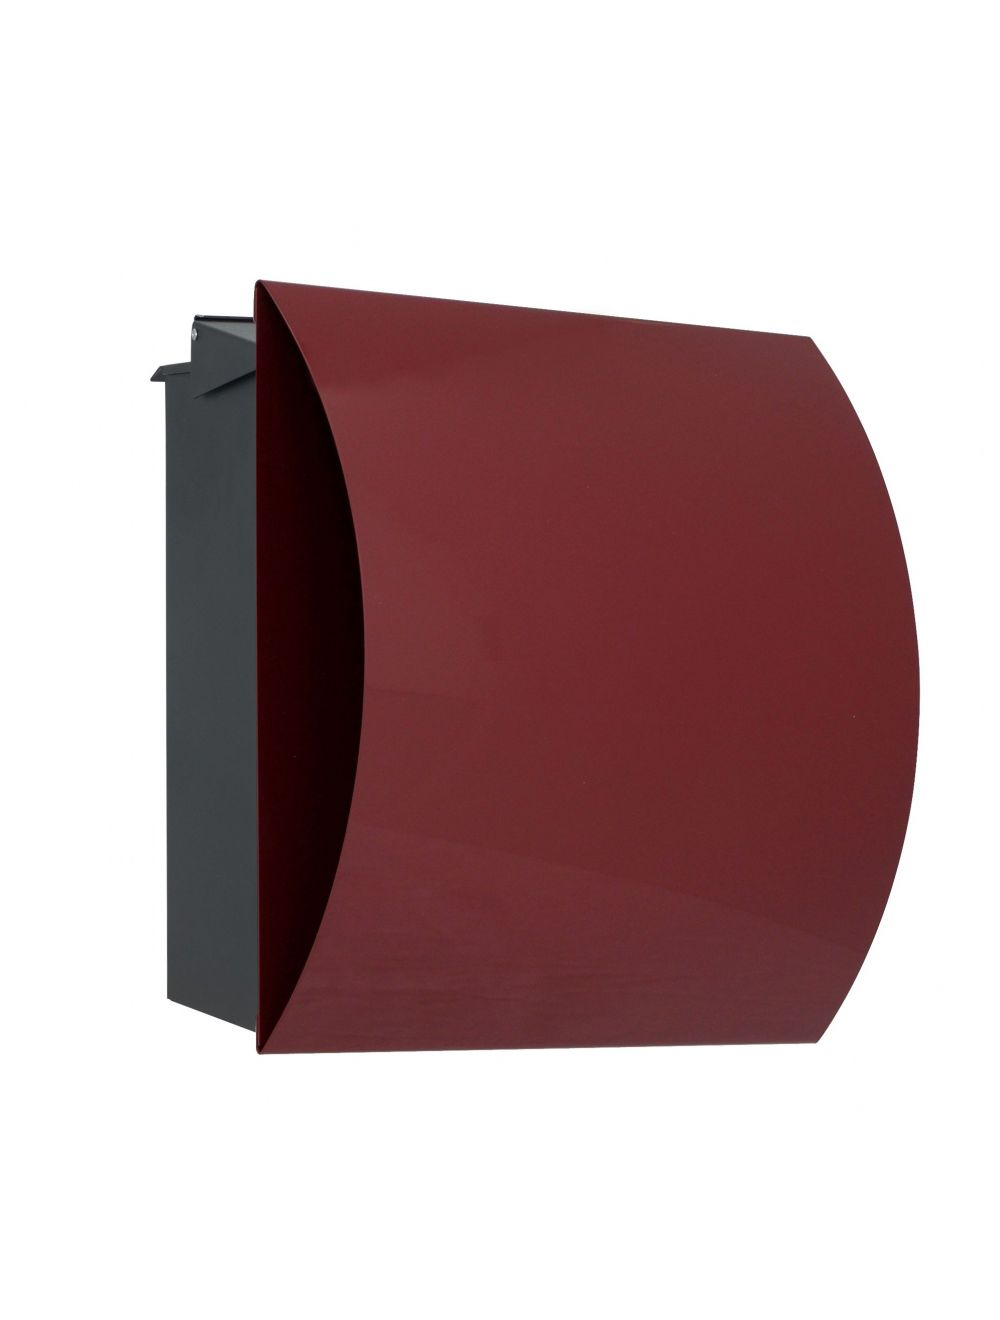 Knobloch Vegas Locking Fence Mount Mailbox with Curved Front and Integrated Newspaper Holder in Wine Red